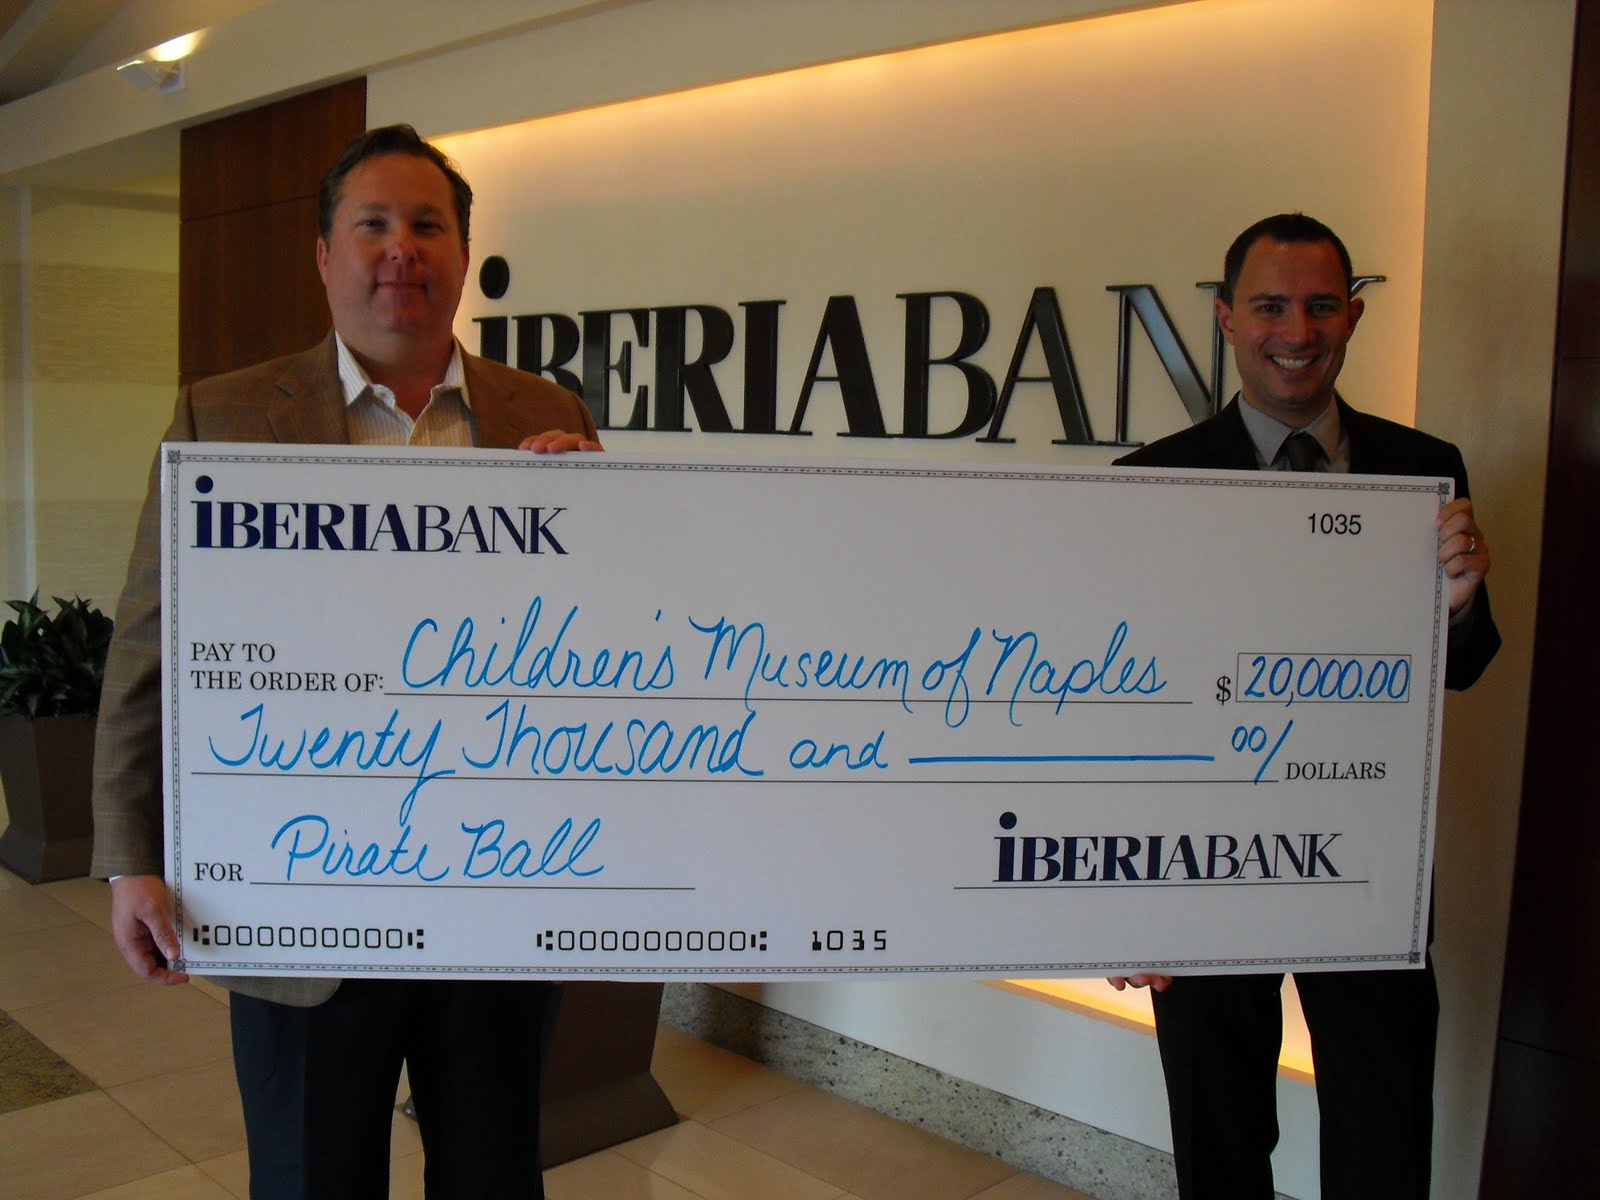 Naples, FL – IBERIABANK